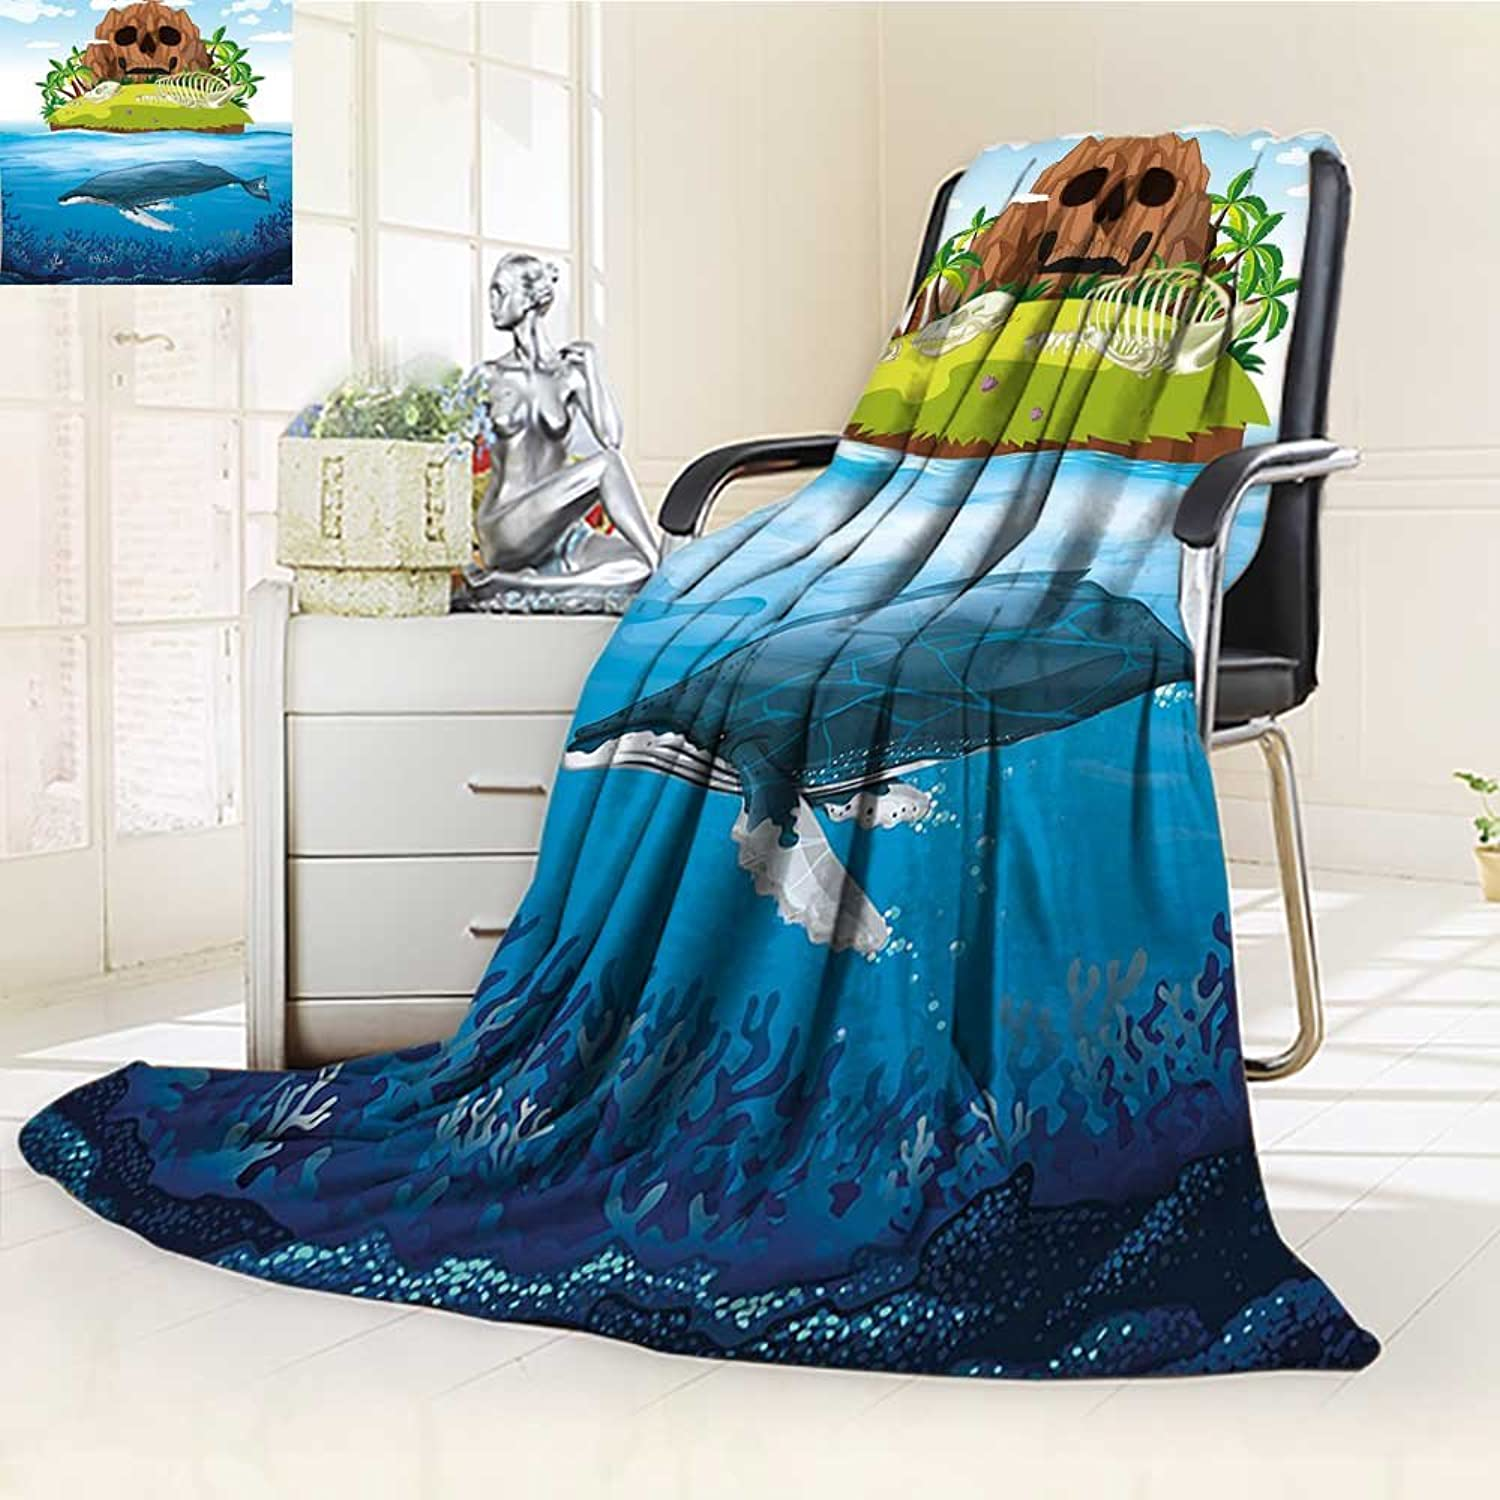 Warm Microfiber All Season Blanket Whale Huge Whale Diving into in Rainbow Perfect for Teens Print Artwork Image,Multicolor